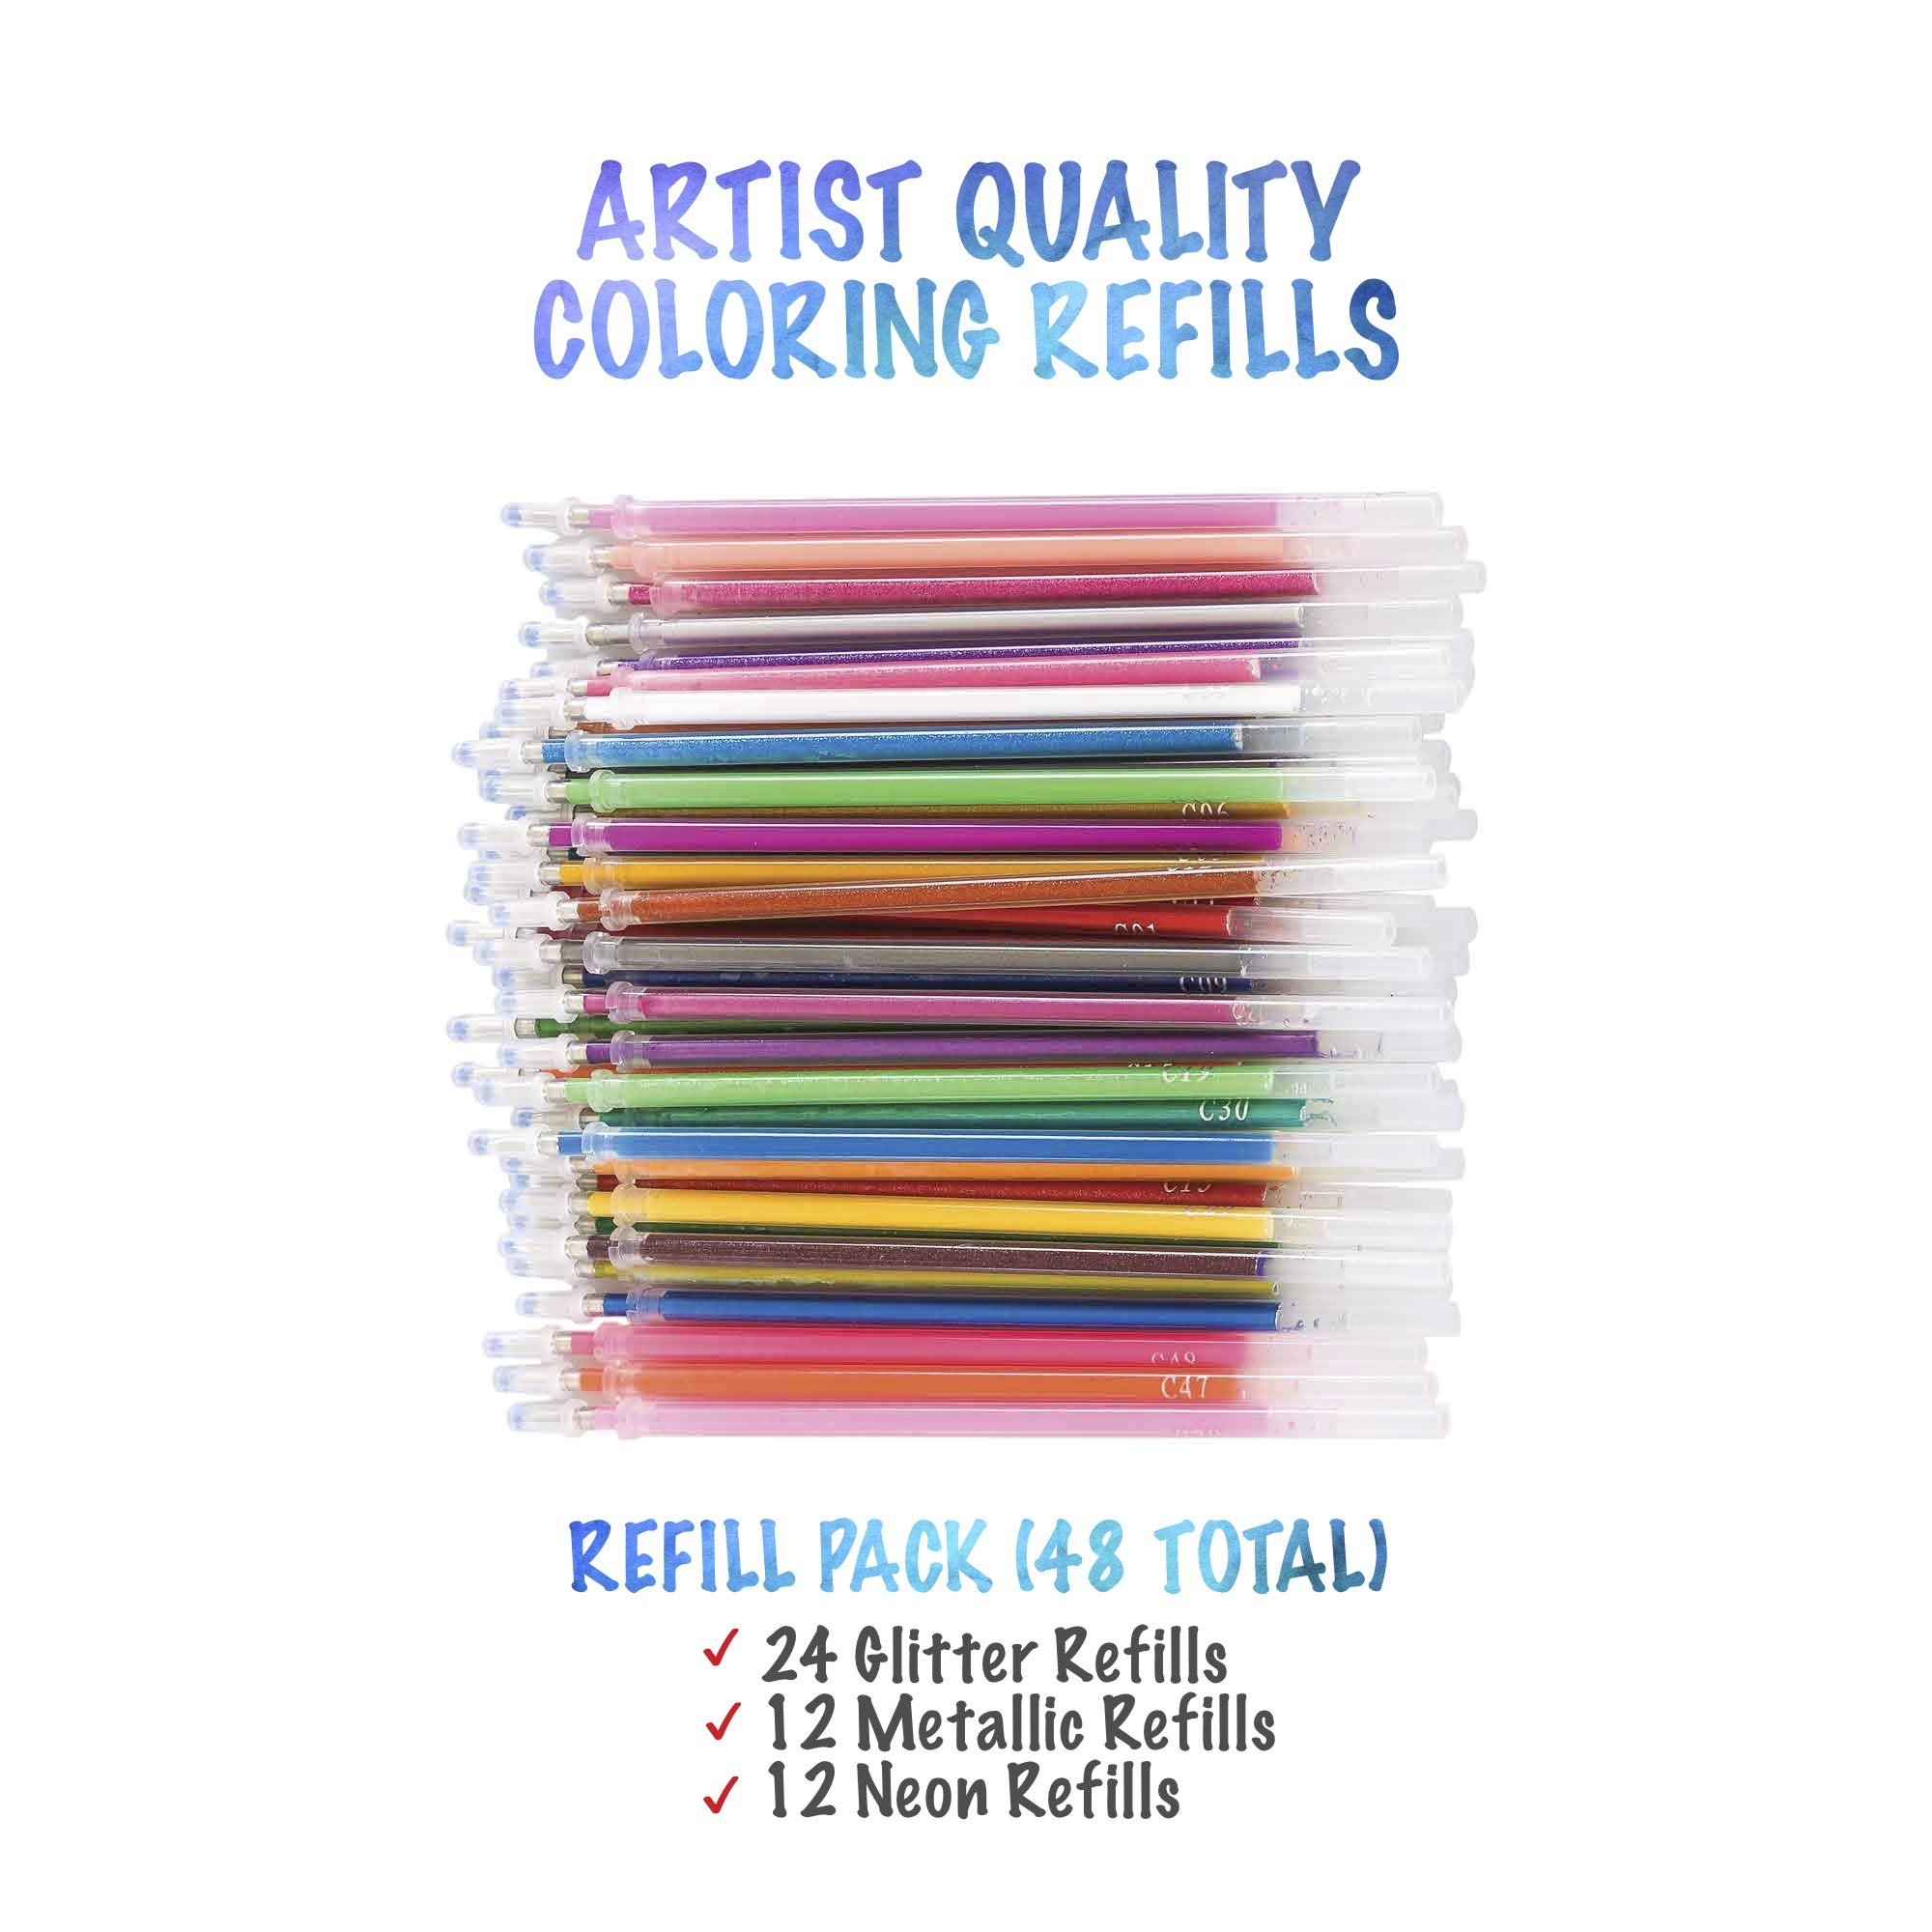 myPALETTEUS 96 Color Gel Pens for Adult Coloring Books- Ink Gel Pens Set with UPGRAGED Case Includes 48 Artist Coloring Pens: 24 Glitter 12 Metallic 12 Neon Plus 48 Refills Bonus Adult Coloring Book by myPALETTEUS (Image #2)